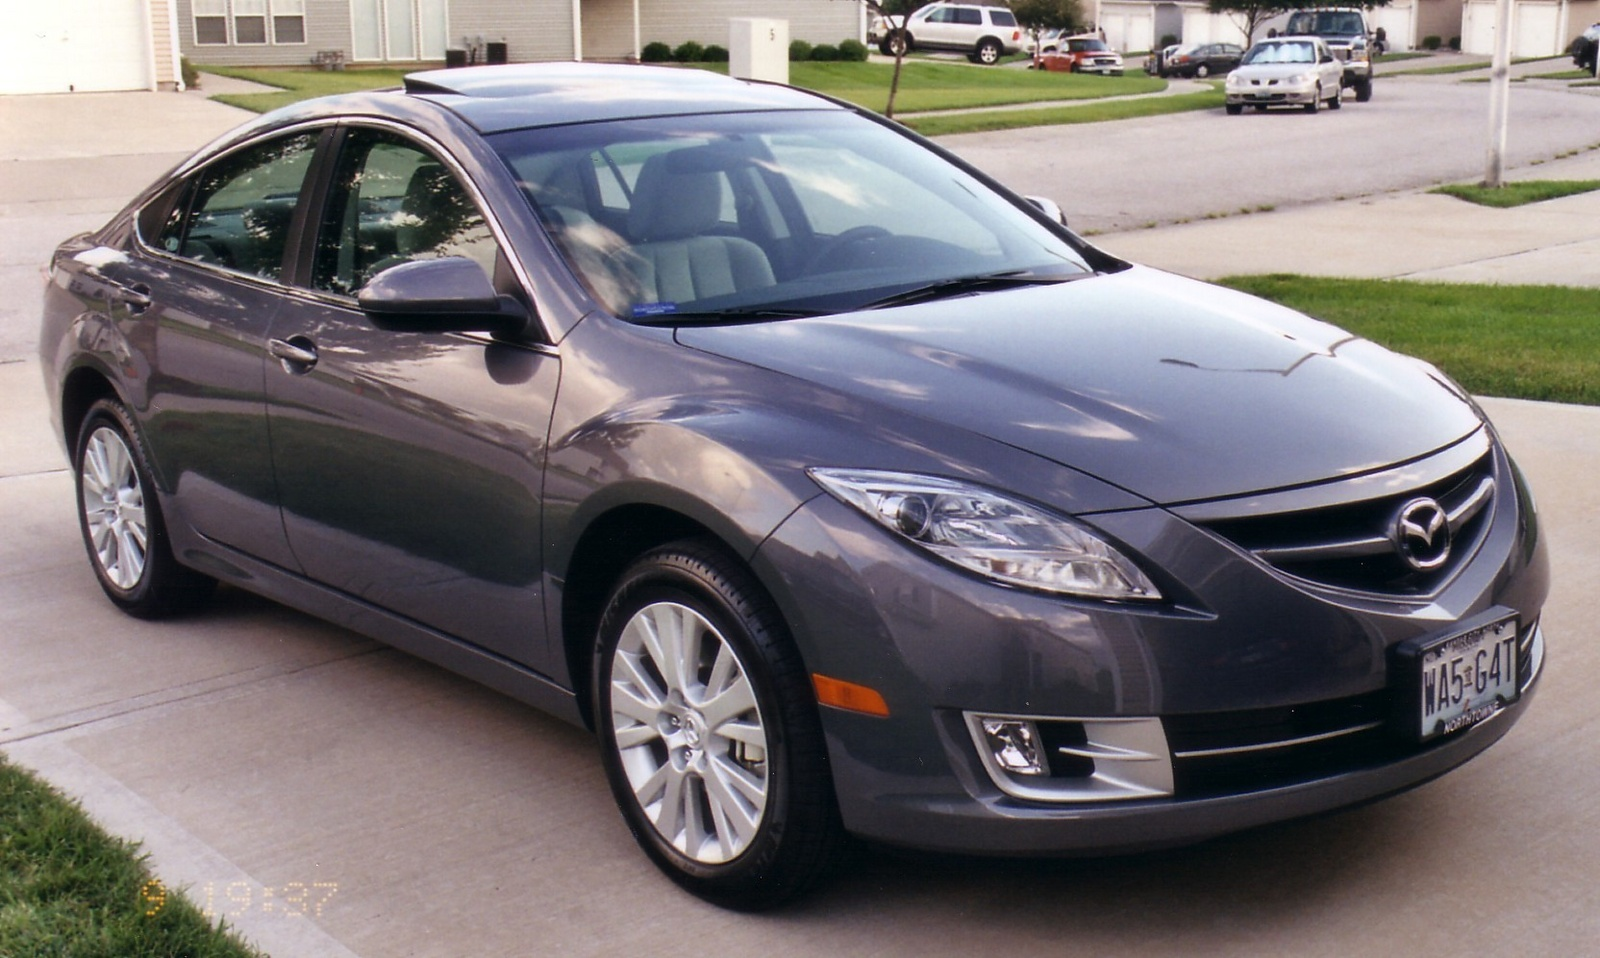 2010 mazda mazda6 for sale cargurus autos post. Black Bedroom Furniture Sets. Home Design Ideas